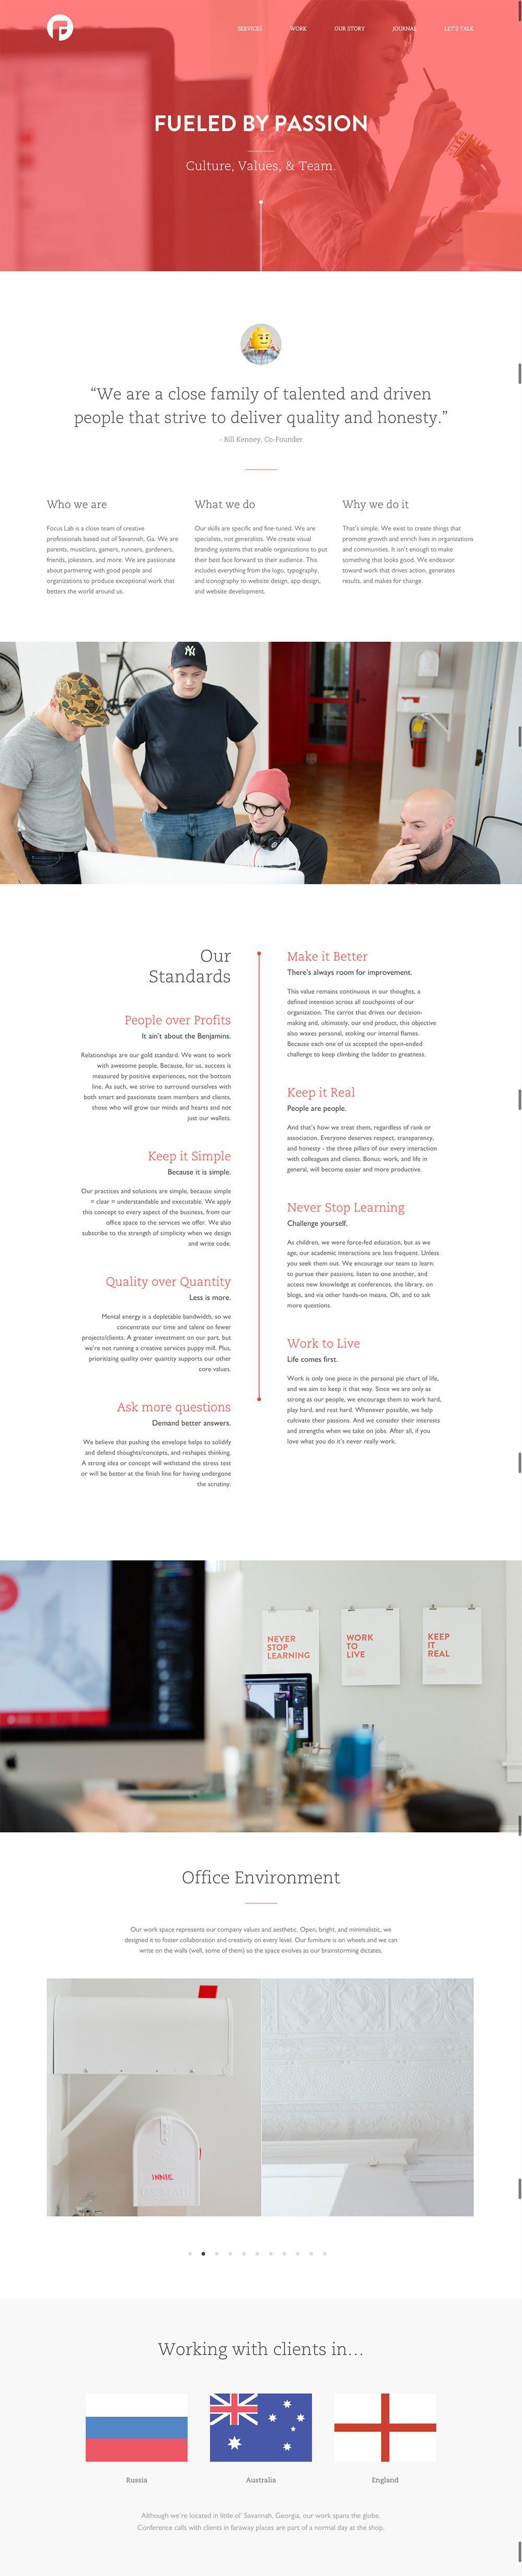 50 Of The Best About Us Pages To Inspire You Learn About Us Page Design About Us Page Website Design Layout